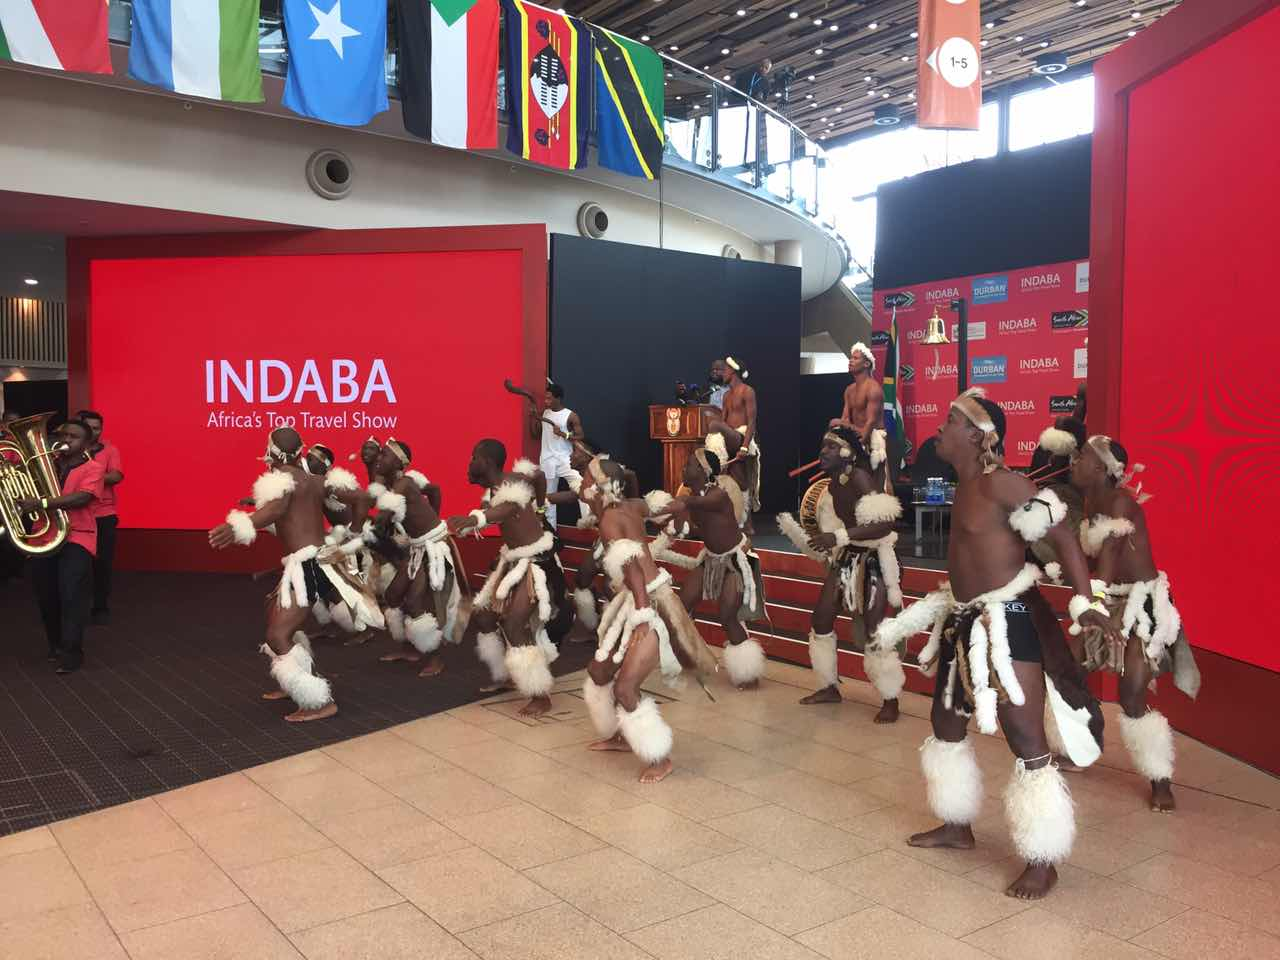 Durban to host Africa Travel Indaba in next five years